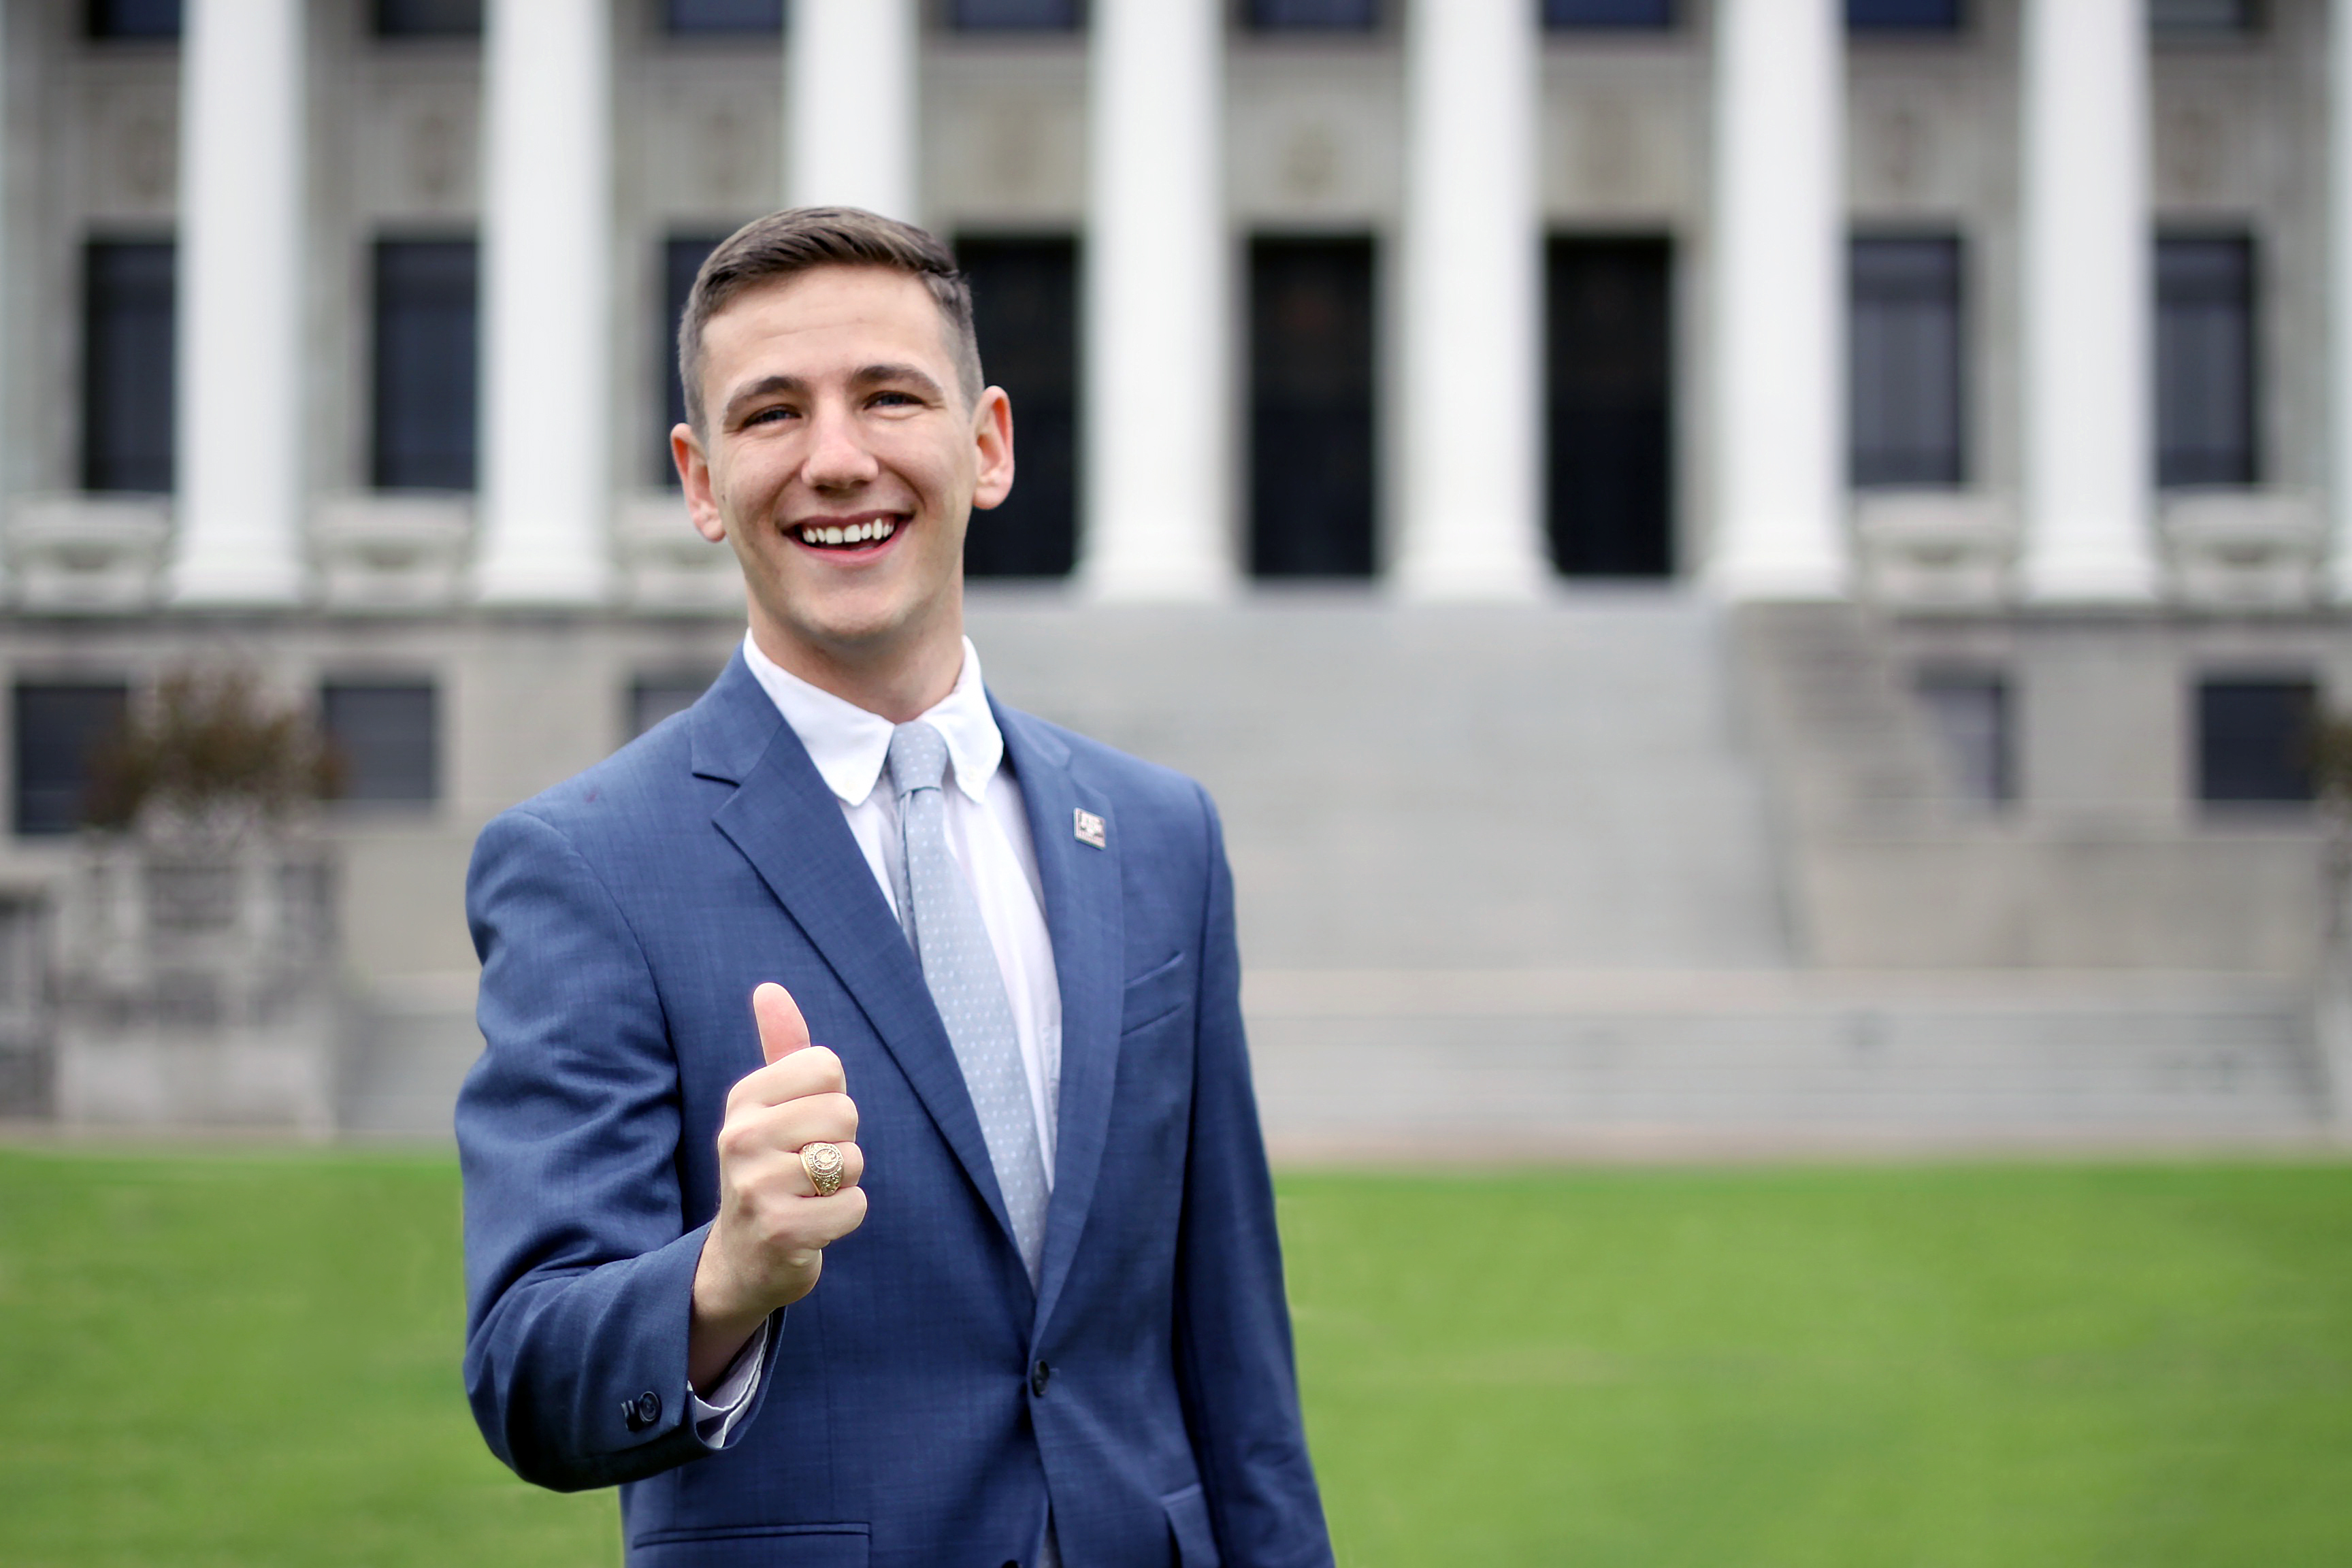 Bobby Brooks, a junior at Texas A&M University, was recently elected student body president.